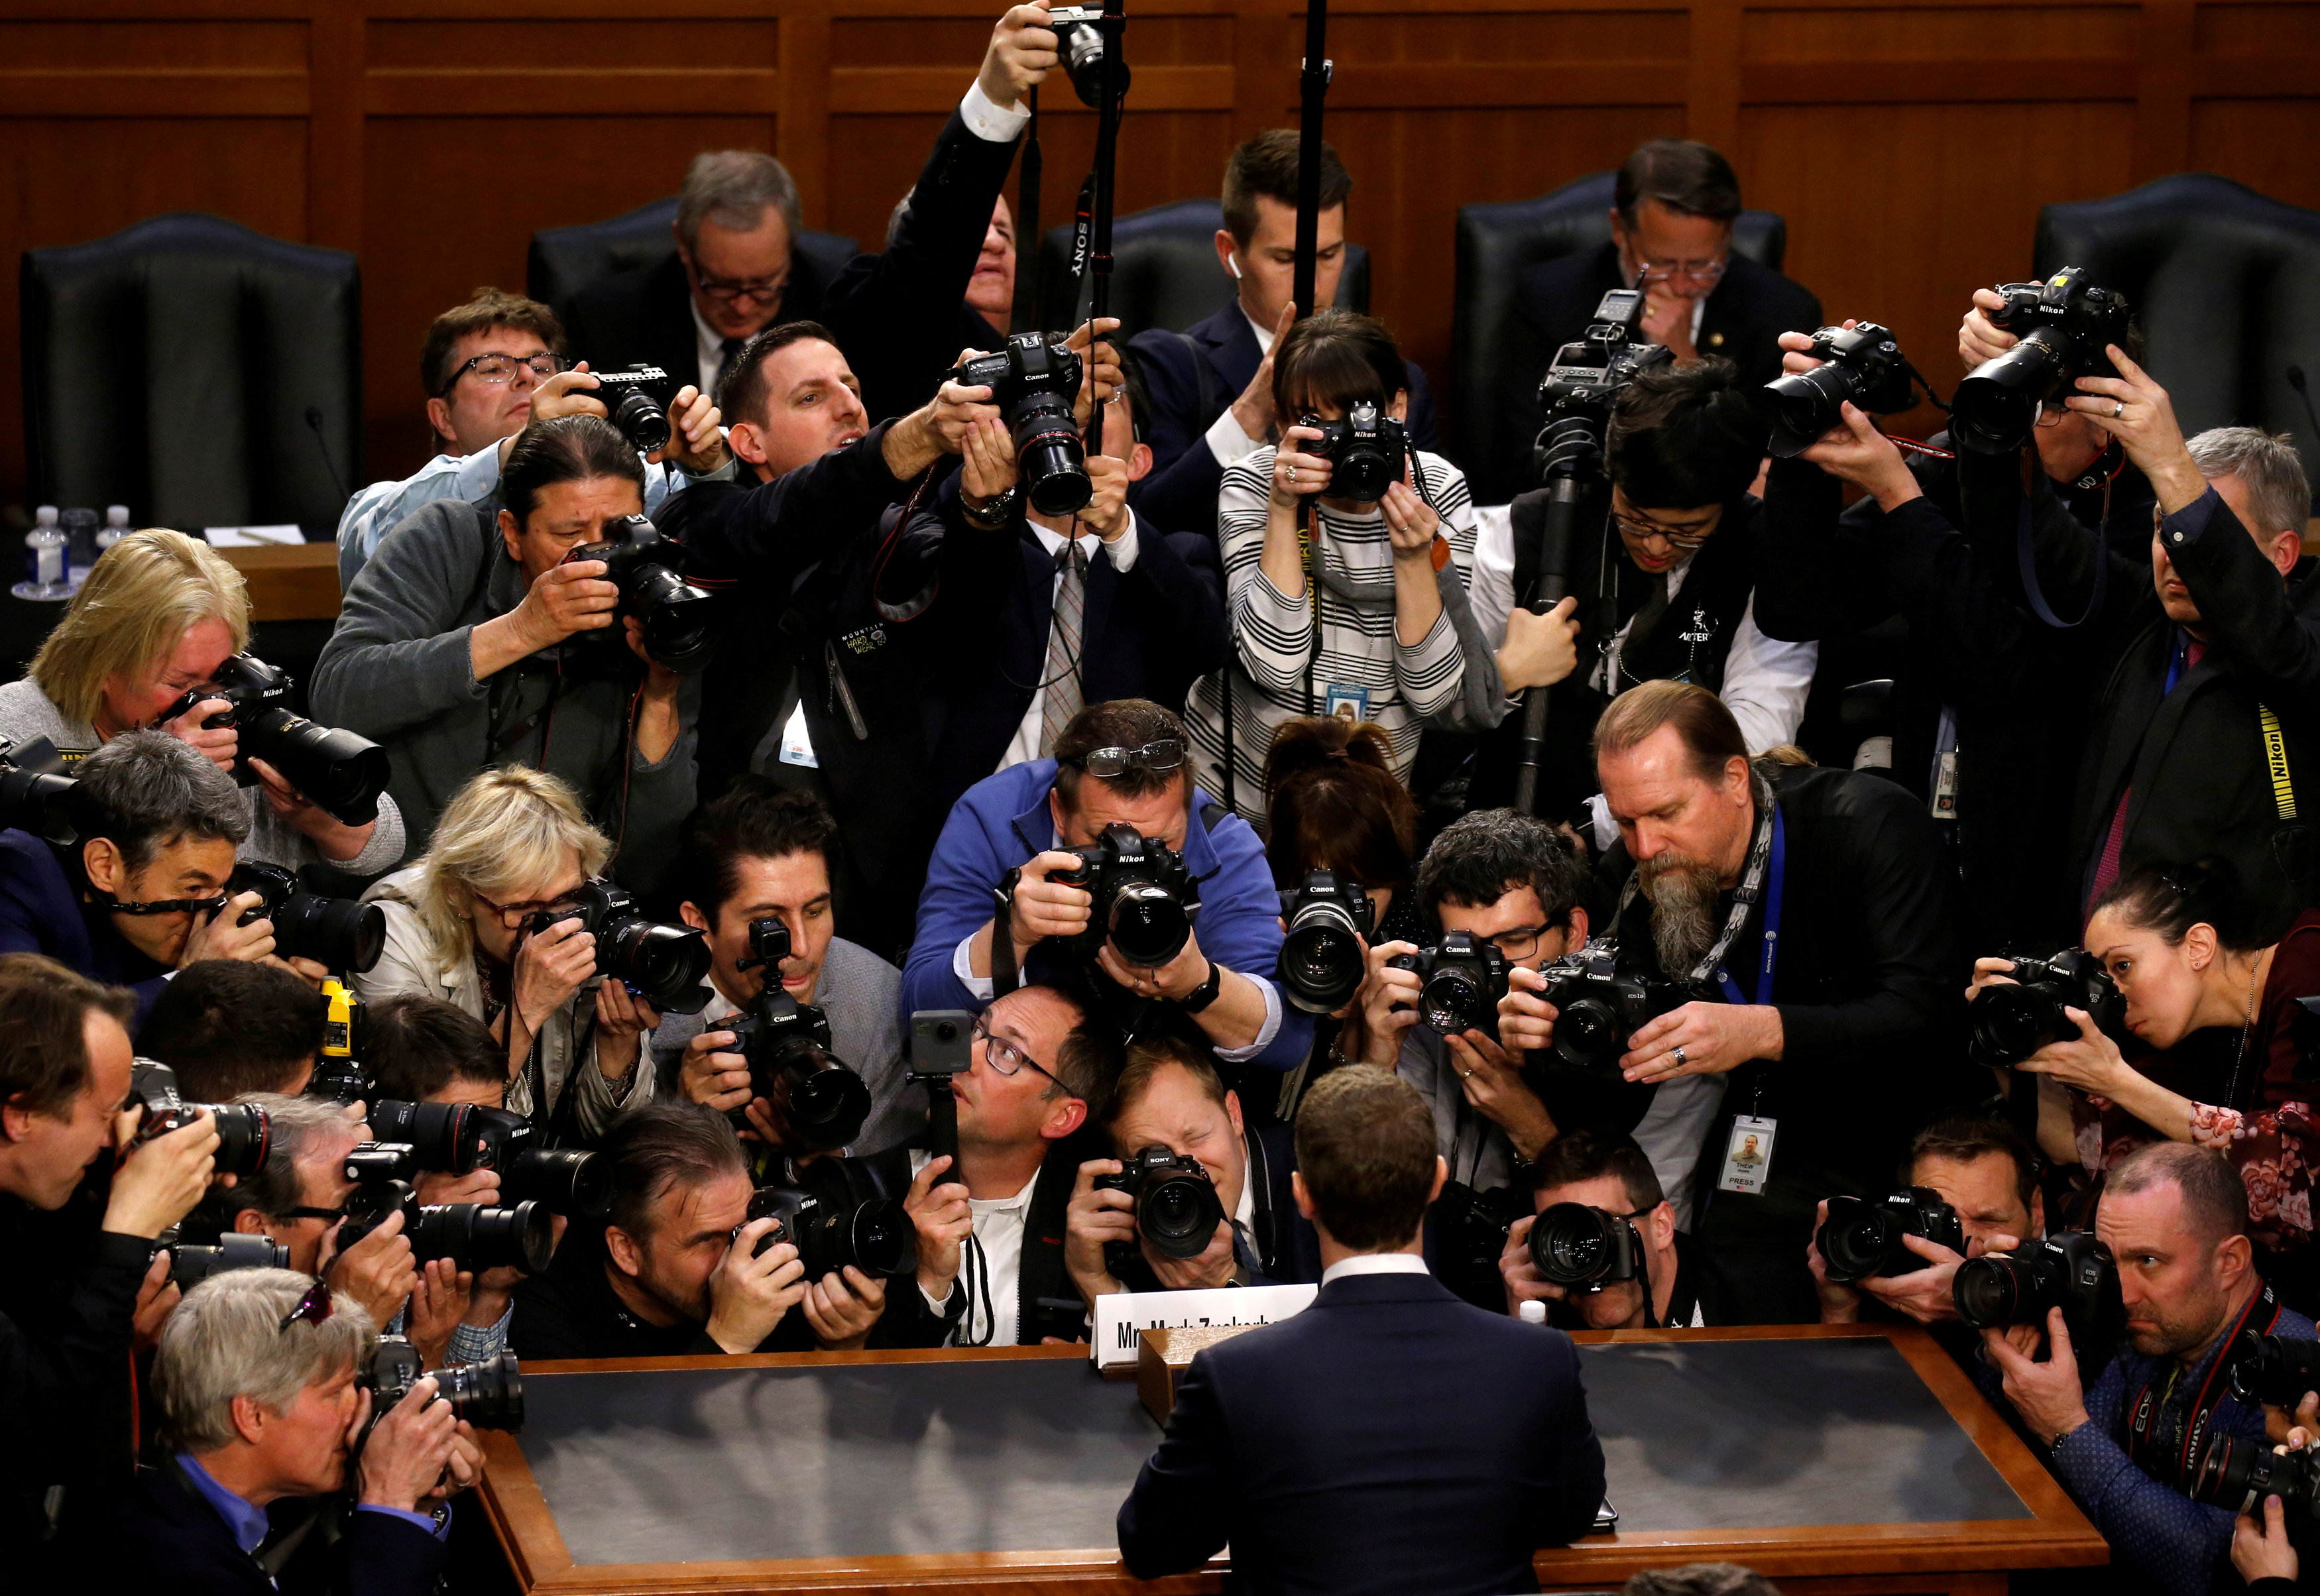 Facebook CEO Mark Zuckerberg is surrounded by members of the media as he arrives to testify before a Senate Judiciary and Commerce Committees joint hearing regarding the company's use and protection of user data, on Capitol Hill in Washington, U.S., April 10, 2018. REUTERS/Leah Milli